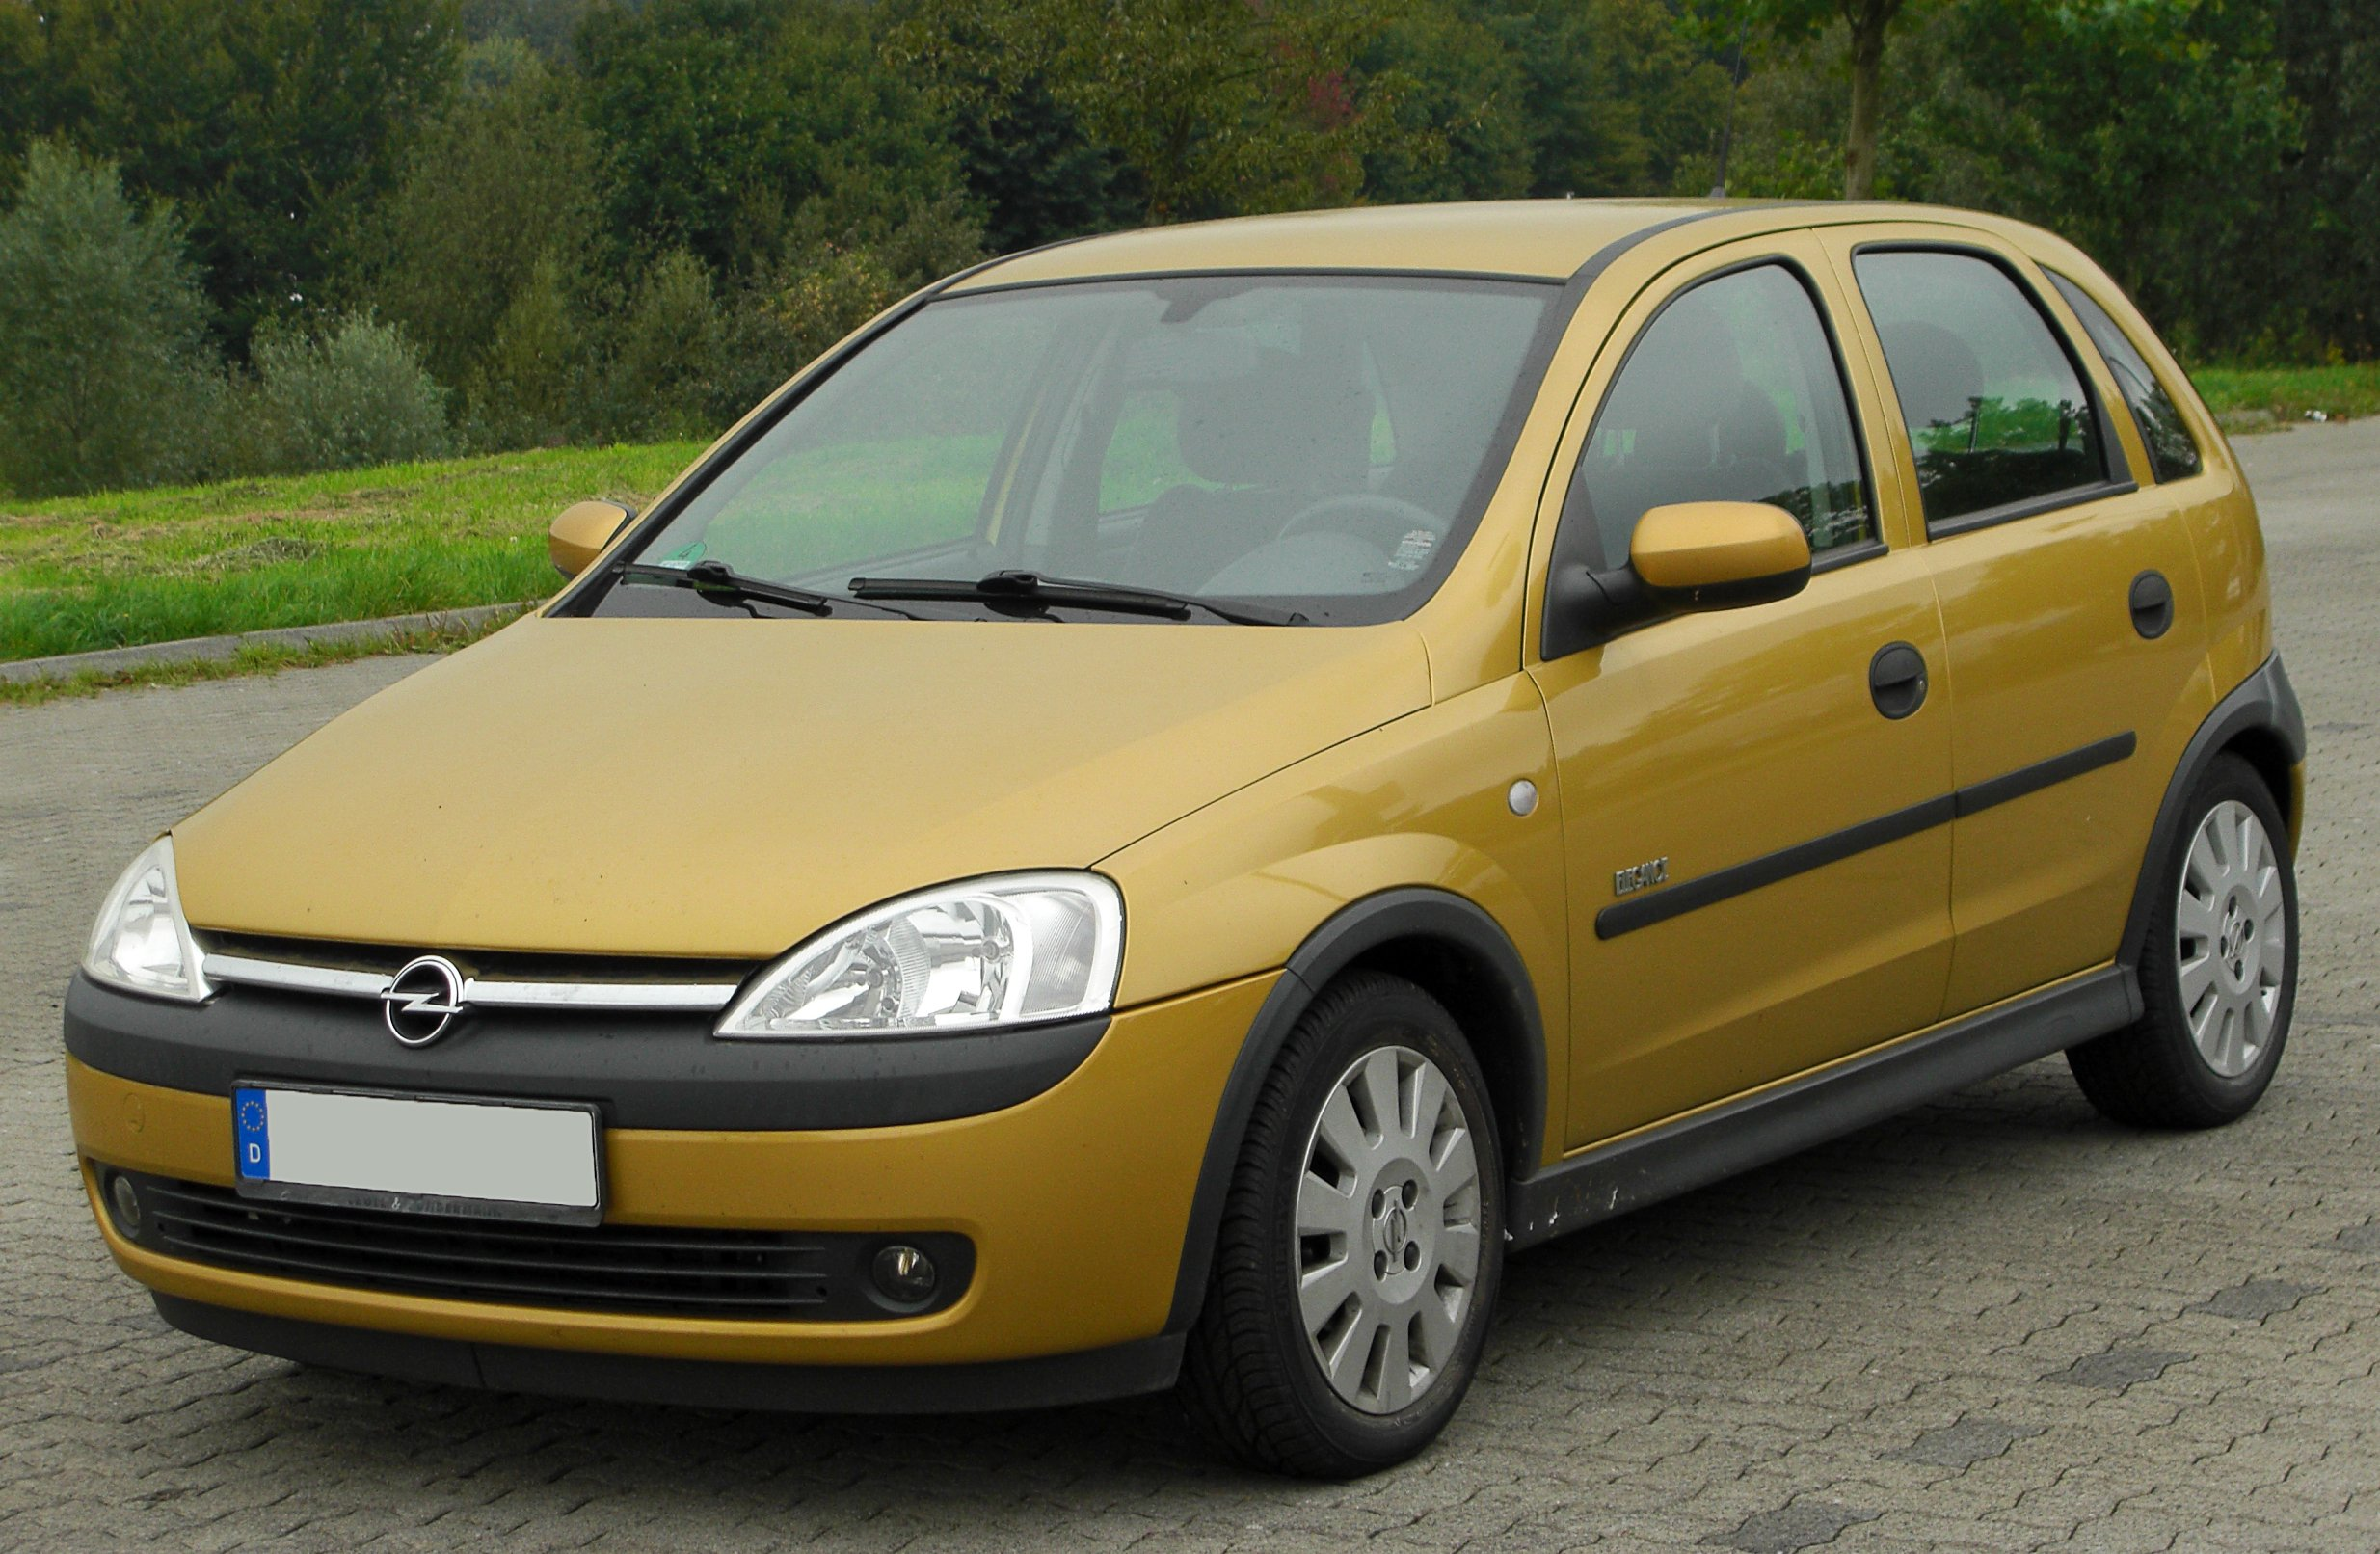 2002 opel corsa c pictures information and specs auto. Black Bedroom Furniture Sets. Home Design Ideas